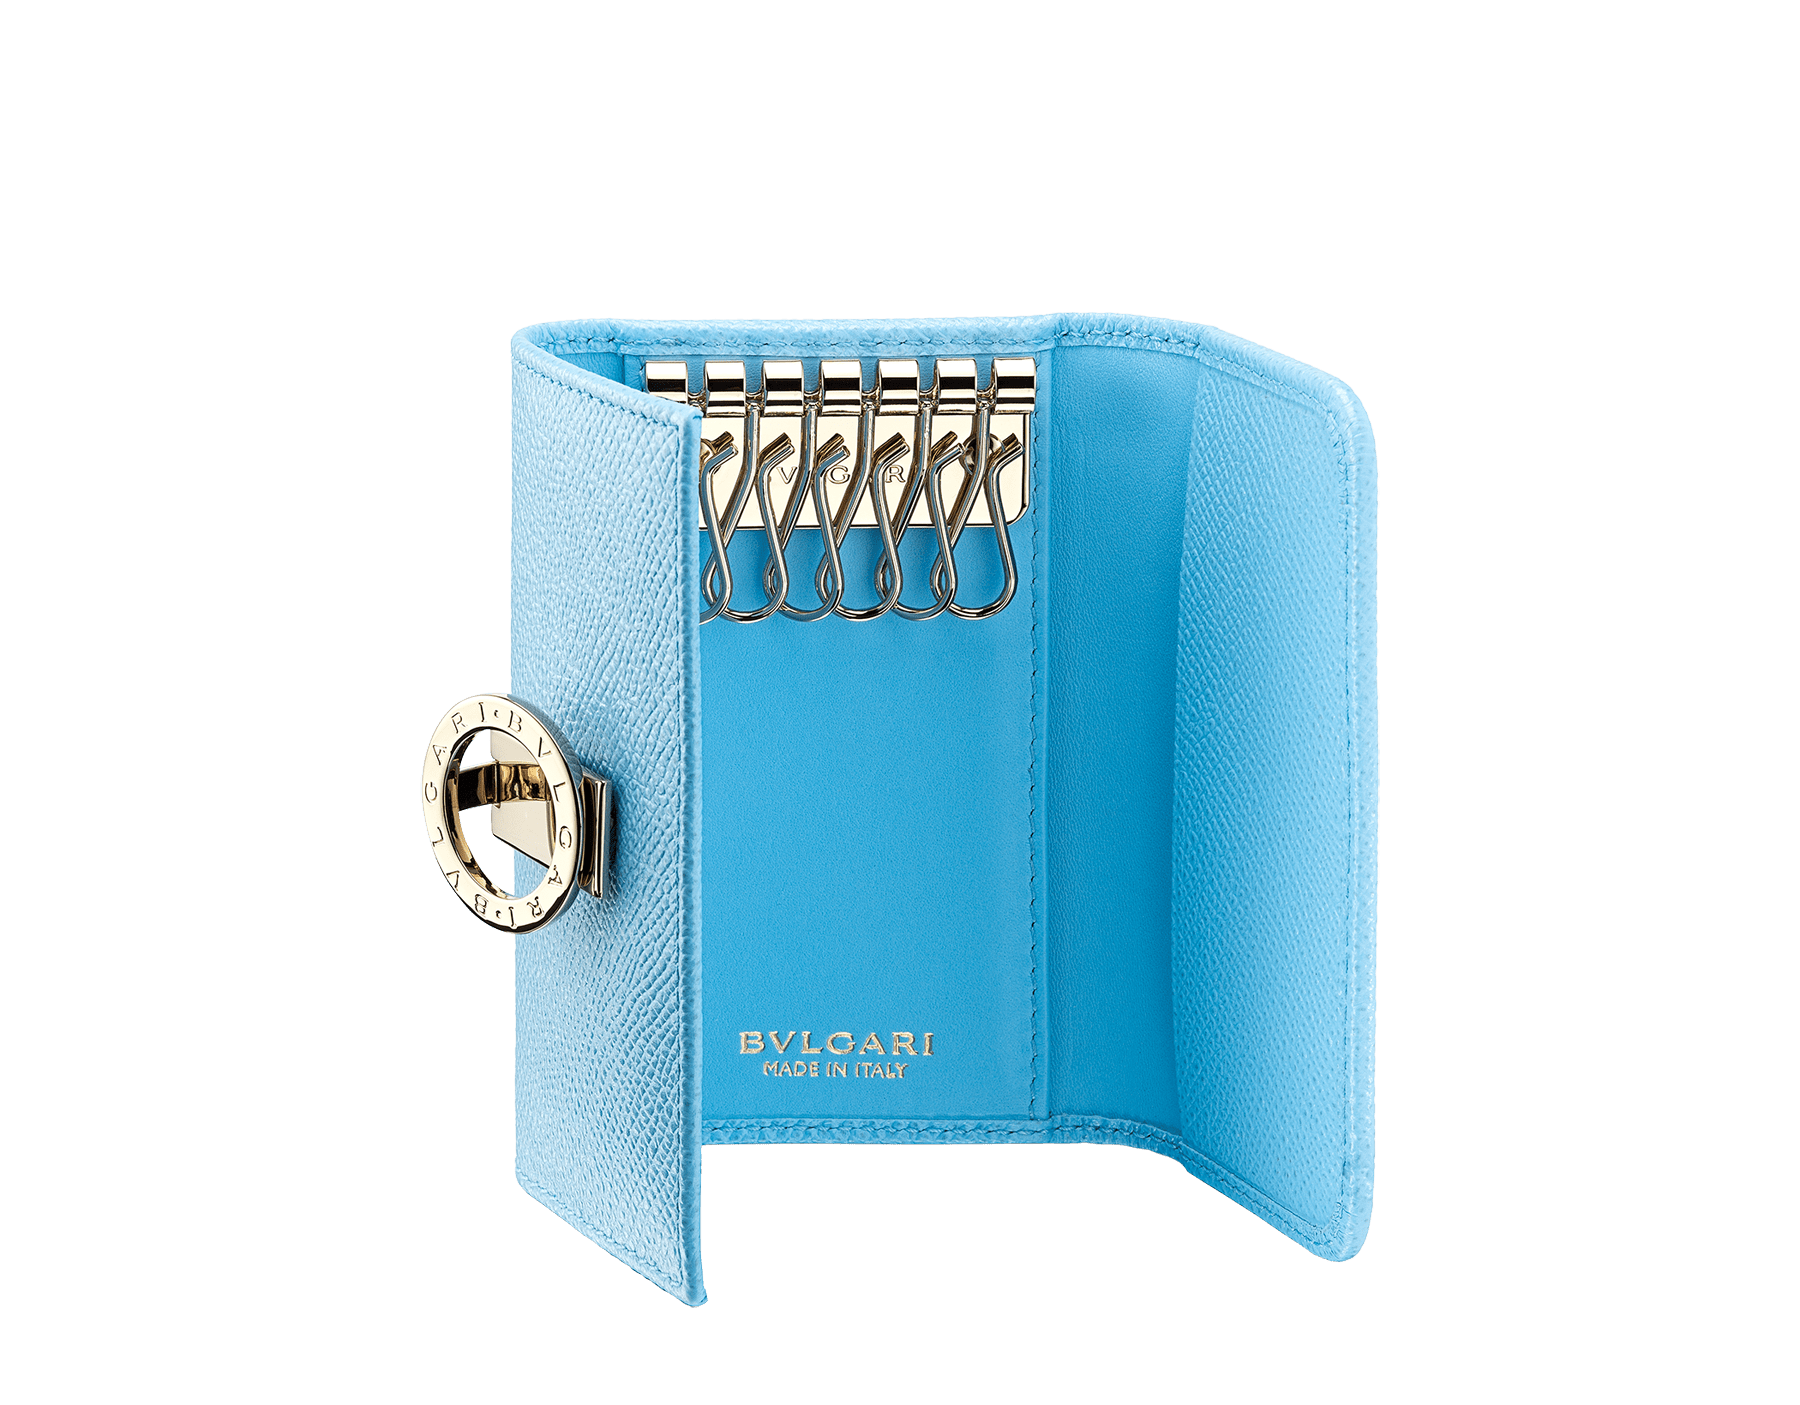 """BVLGARI BVLGARI"" small key holder in light, bright Aegean Topaz blue grained calfskin and light Aegean Topaz blue nappa leather. Iconic logo clip closure in light gold-plated brass. 579-KEYHOLDER-Sc image 2"